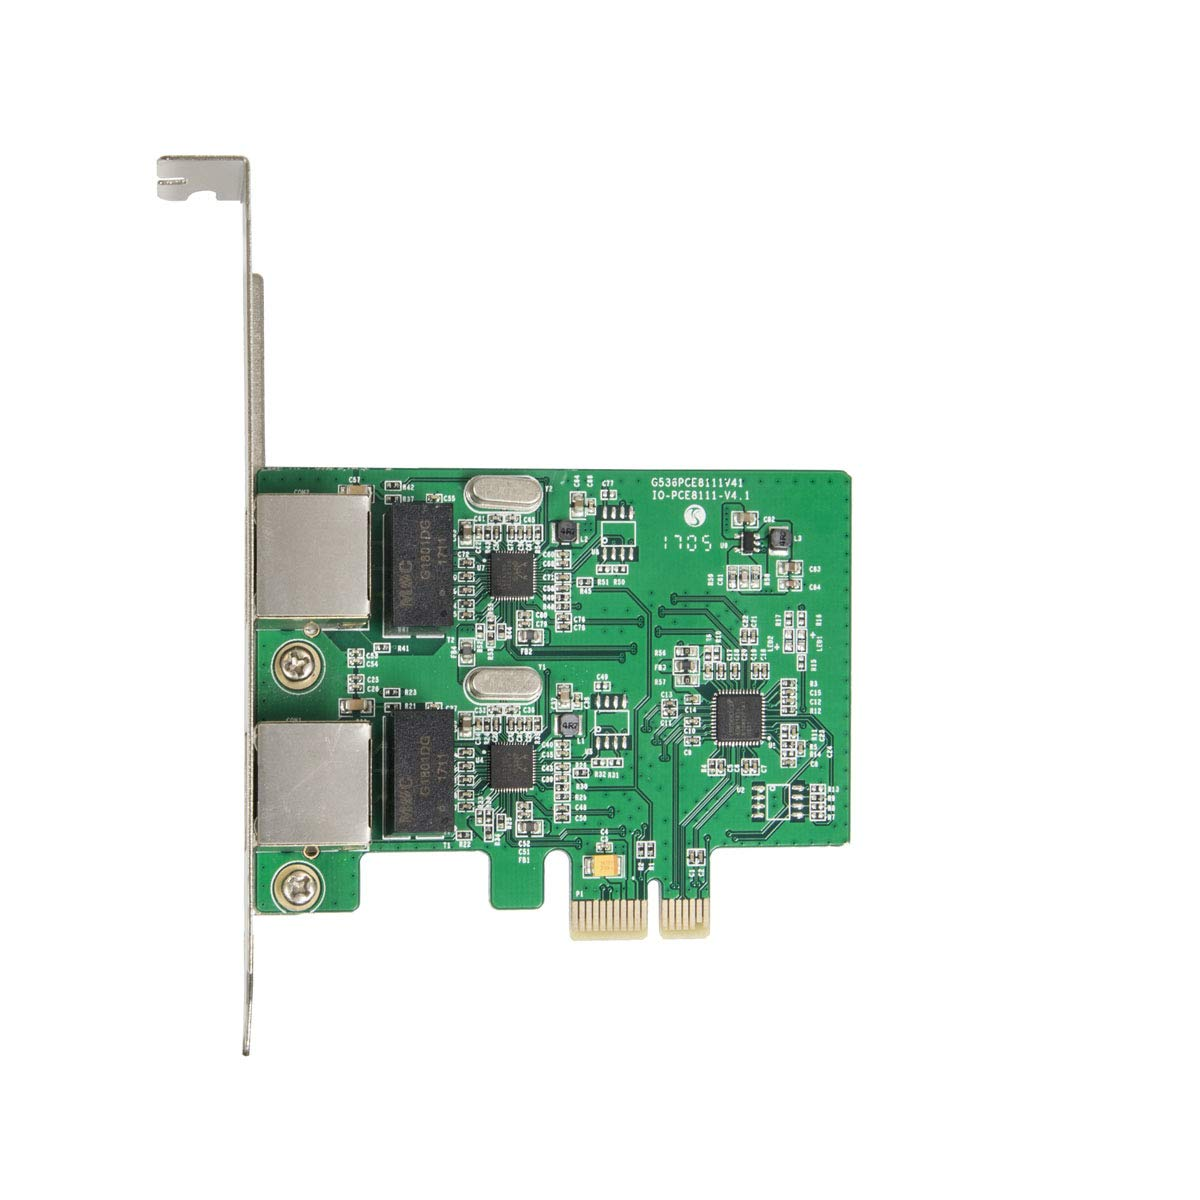 Syba SD-PEX24033 Dual LAN Ports 1000-Base T Gigabit Ethernet Card Green